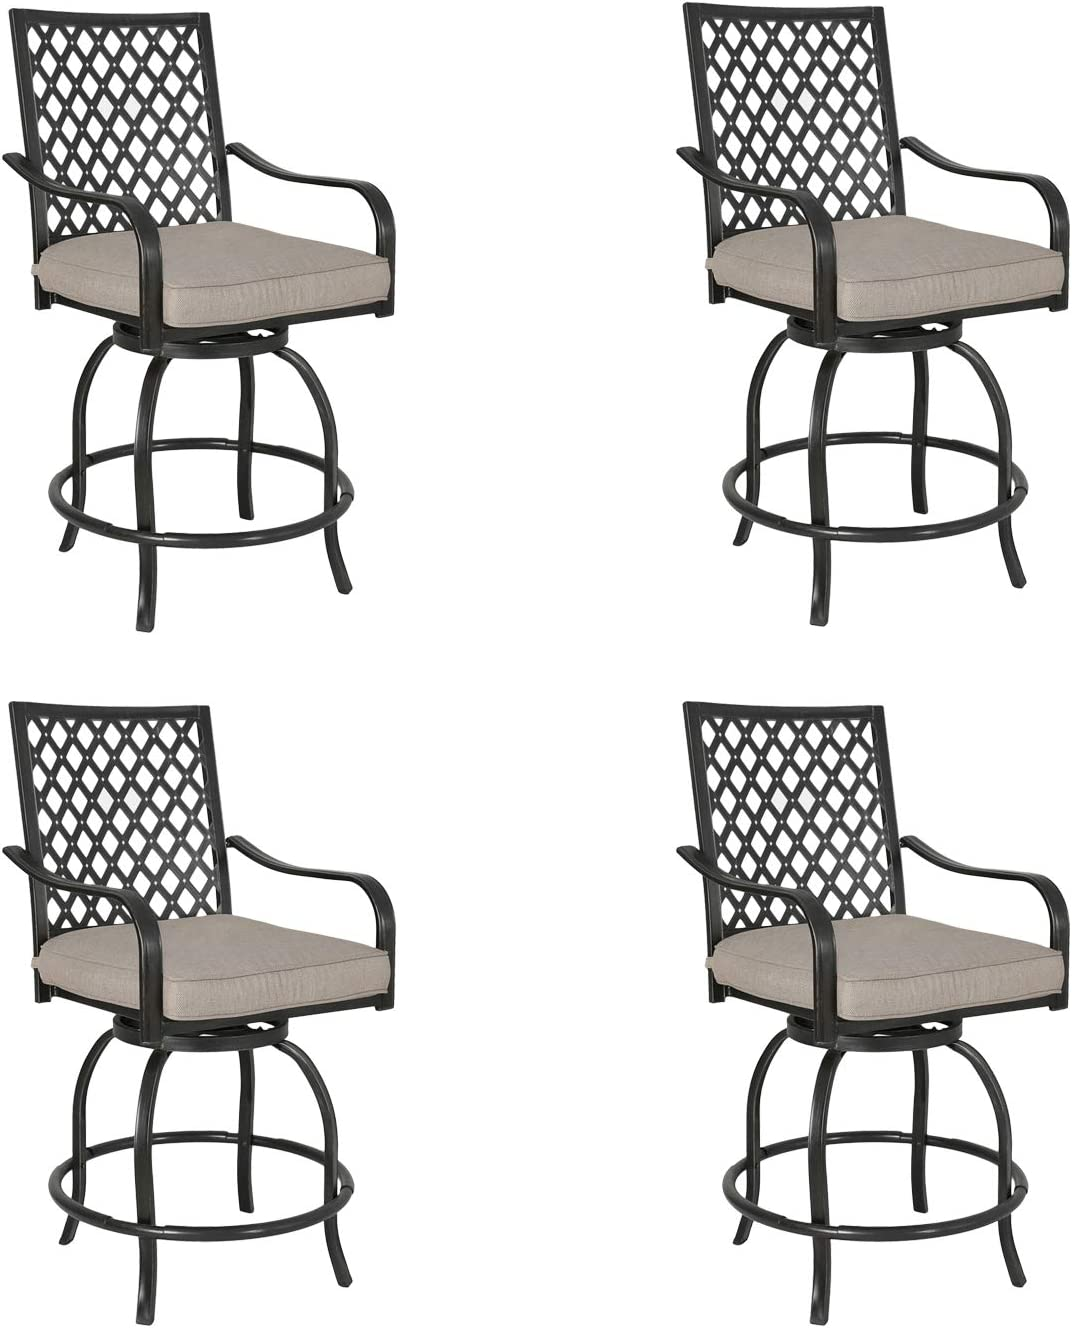 Iwicker 4 Piece Outdoor half Swivel Bistro Bar Stool Rapid rise with Polyes 100%